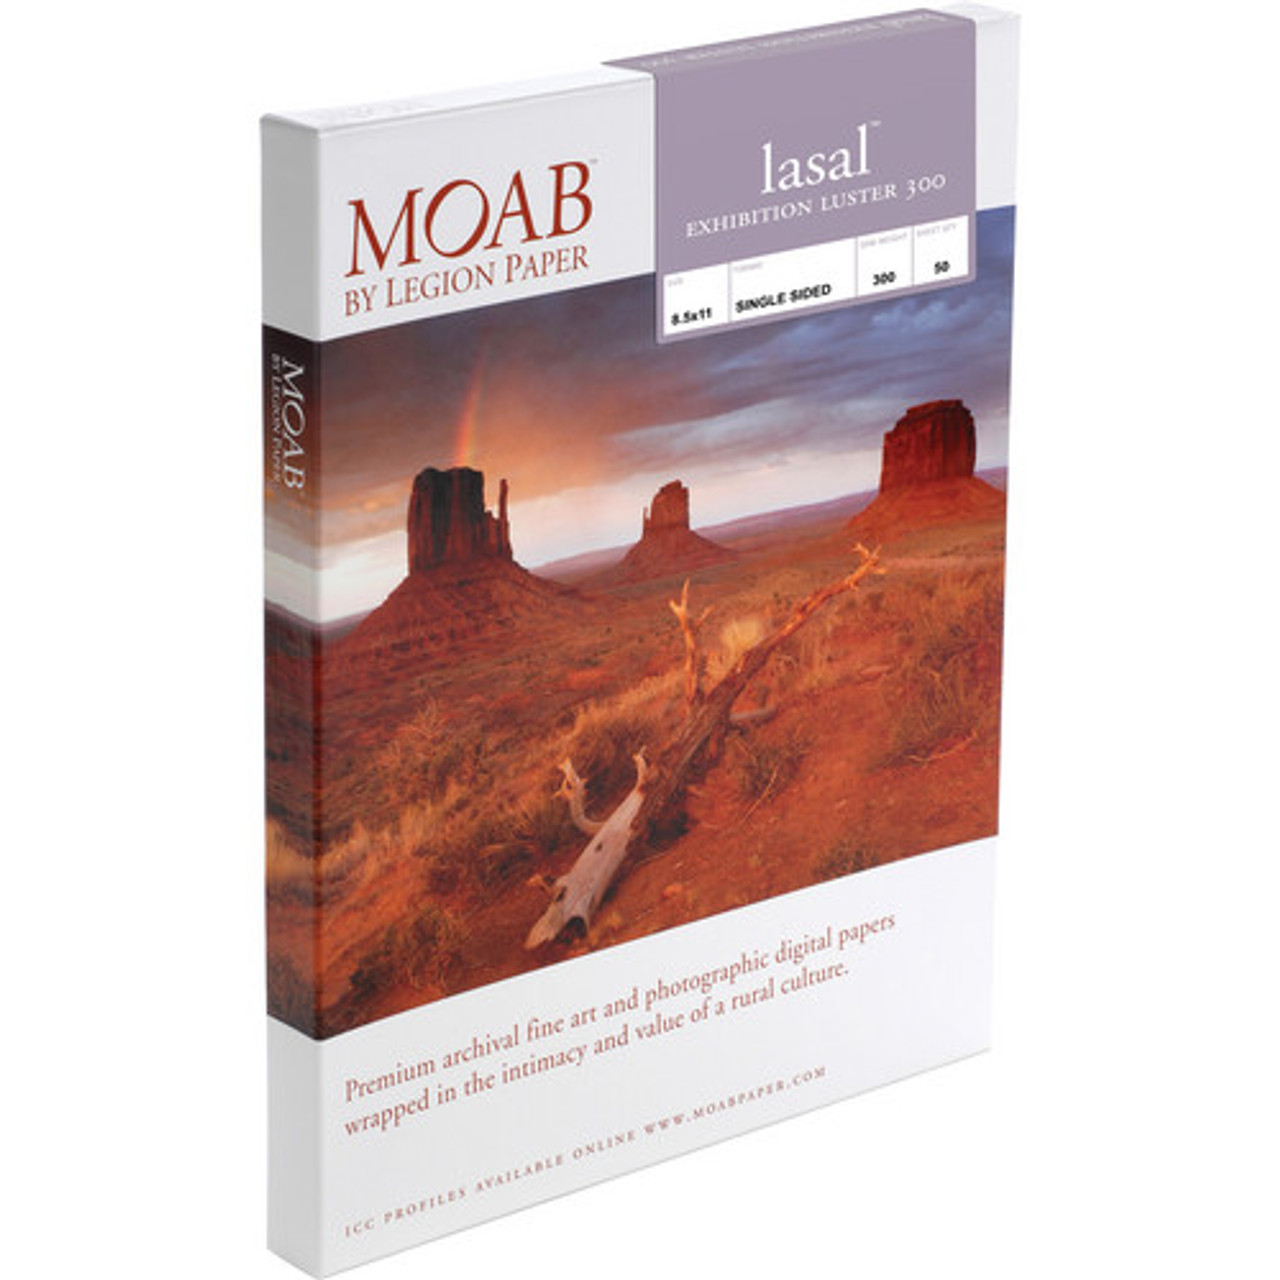 MOAB LASAL EXHIBITION LUSTER 300 (50 SHEETS)